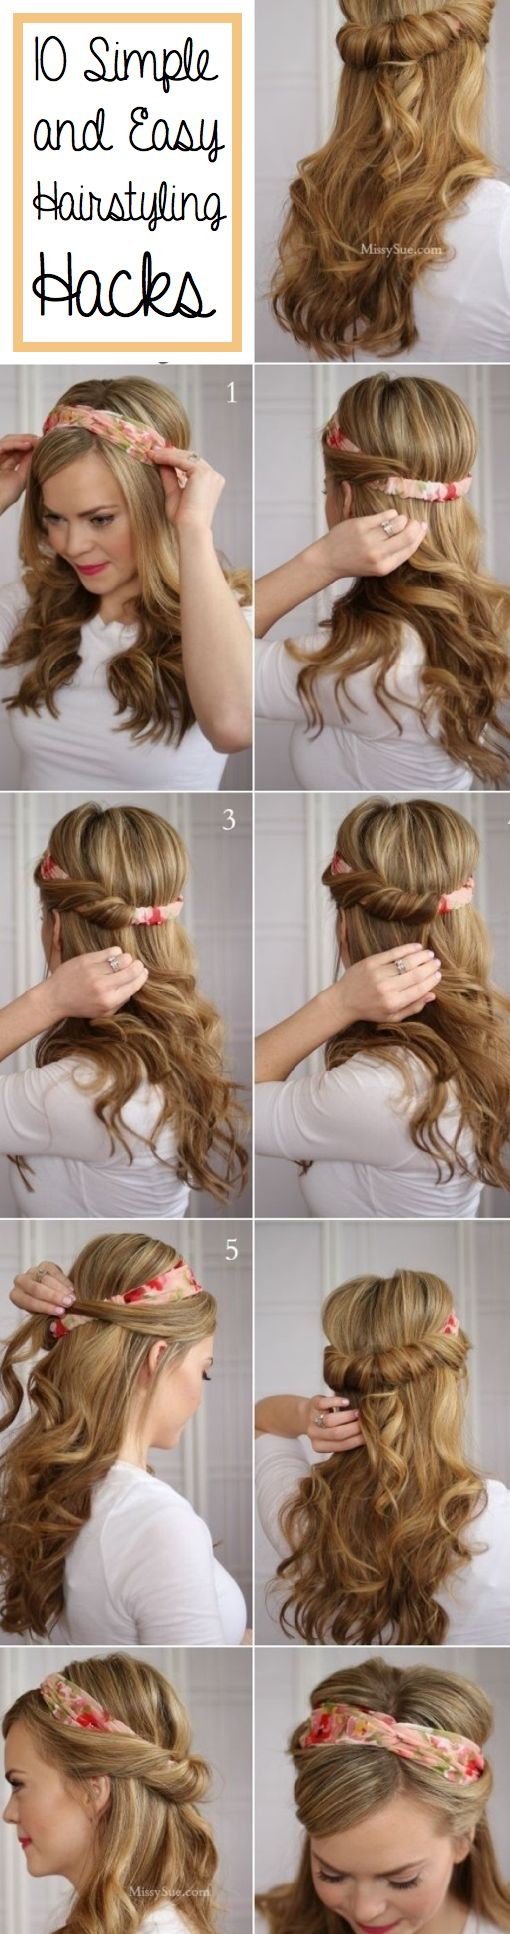 10+Simple+and+Easy+Hairstyling+Hacks+for+Those+Lazy+Days